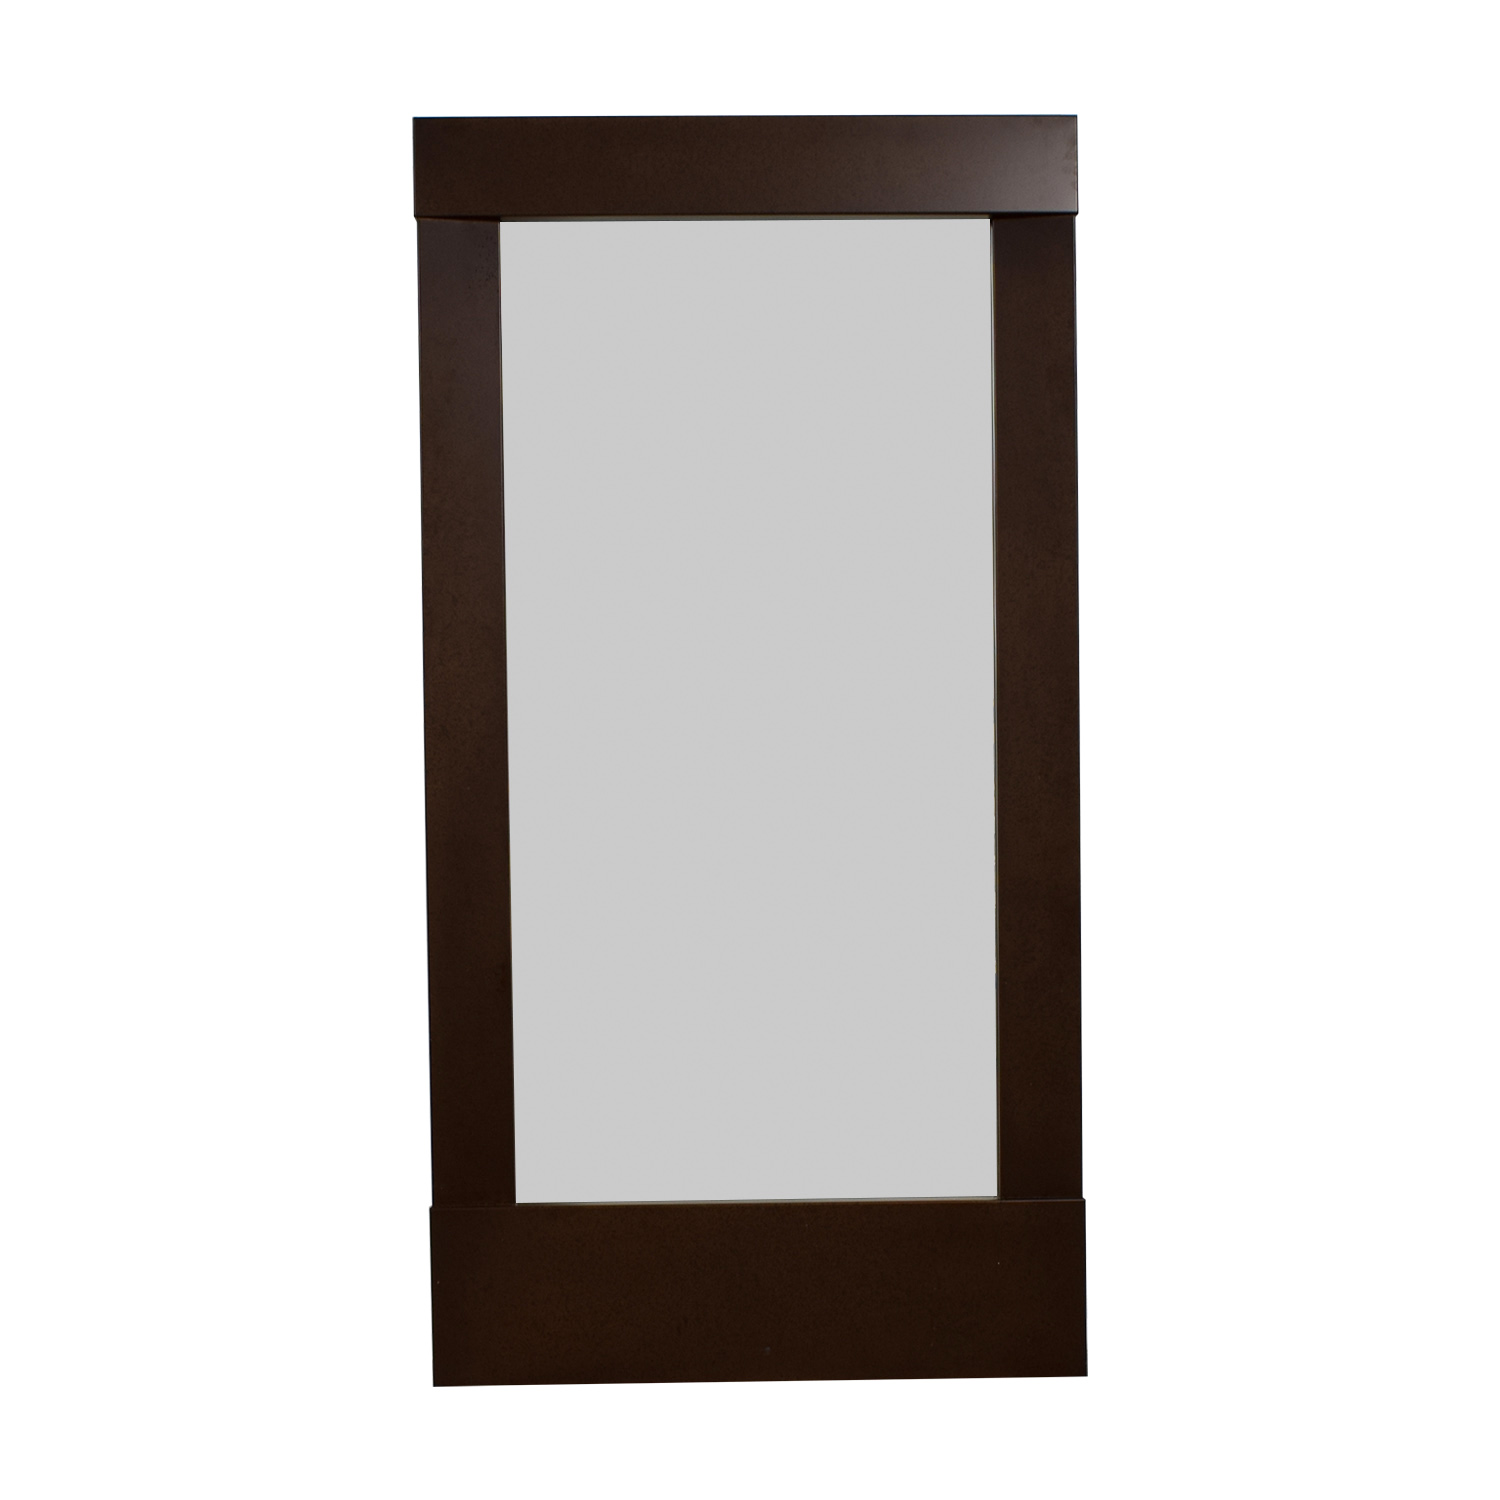 buy Crate & Barrel Colby Bronze Floor Mirror Crate & Barrel Decor